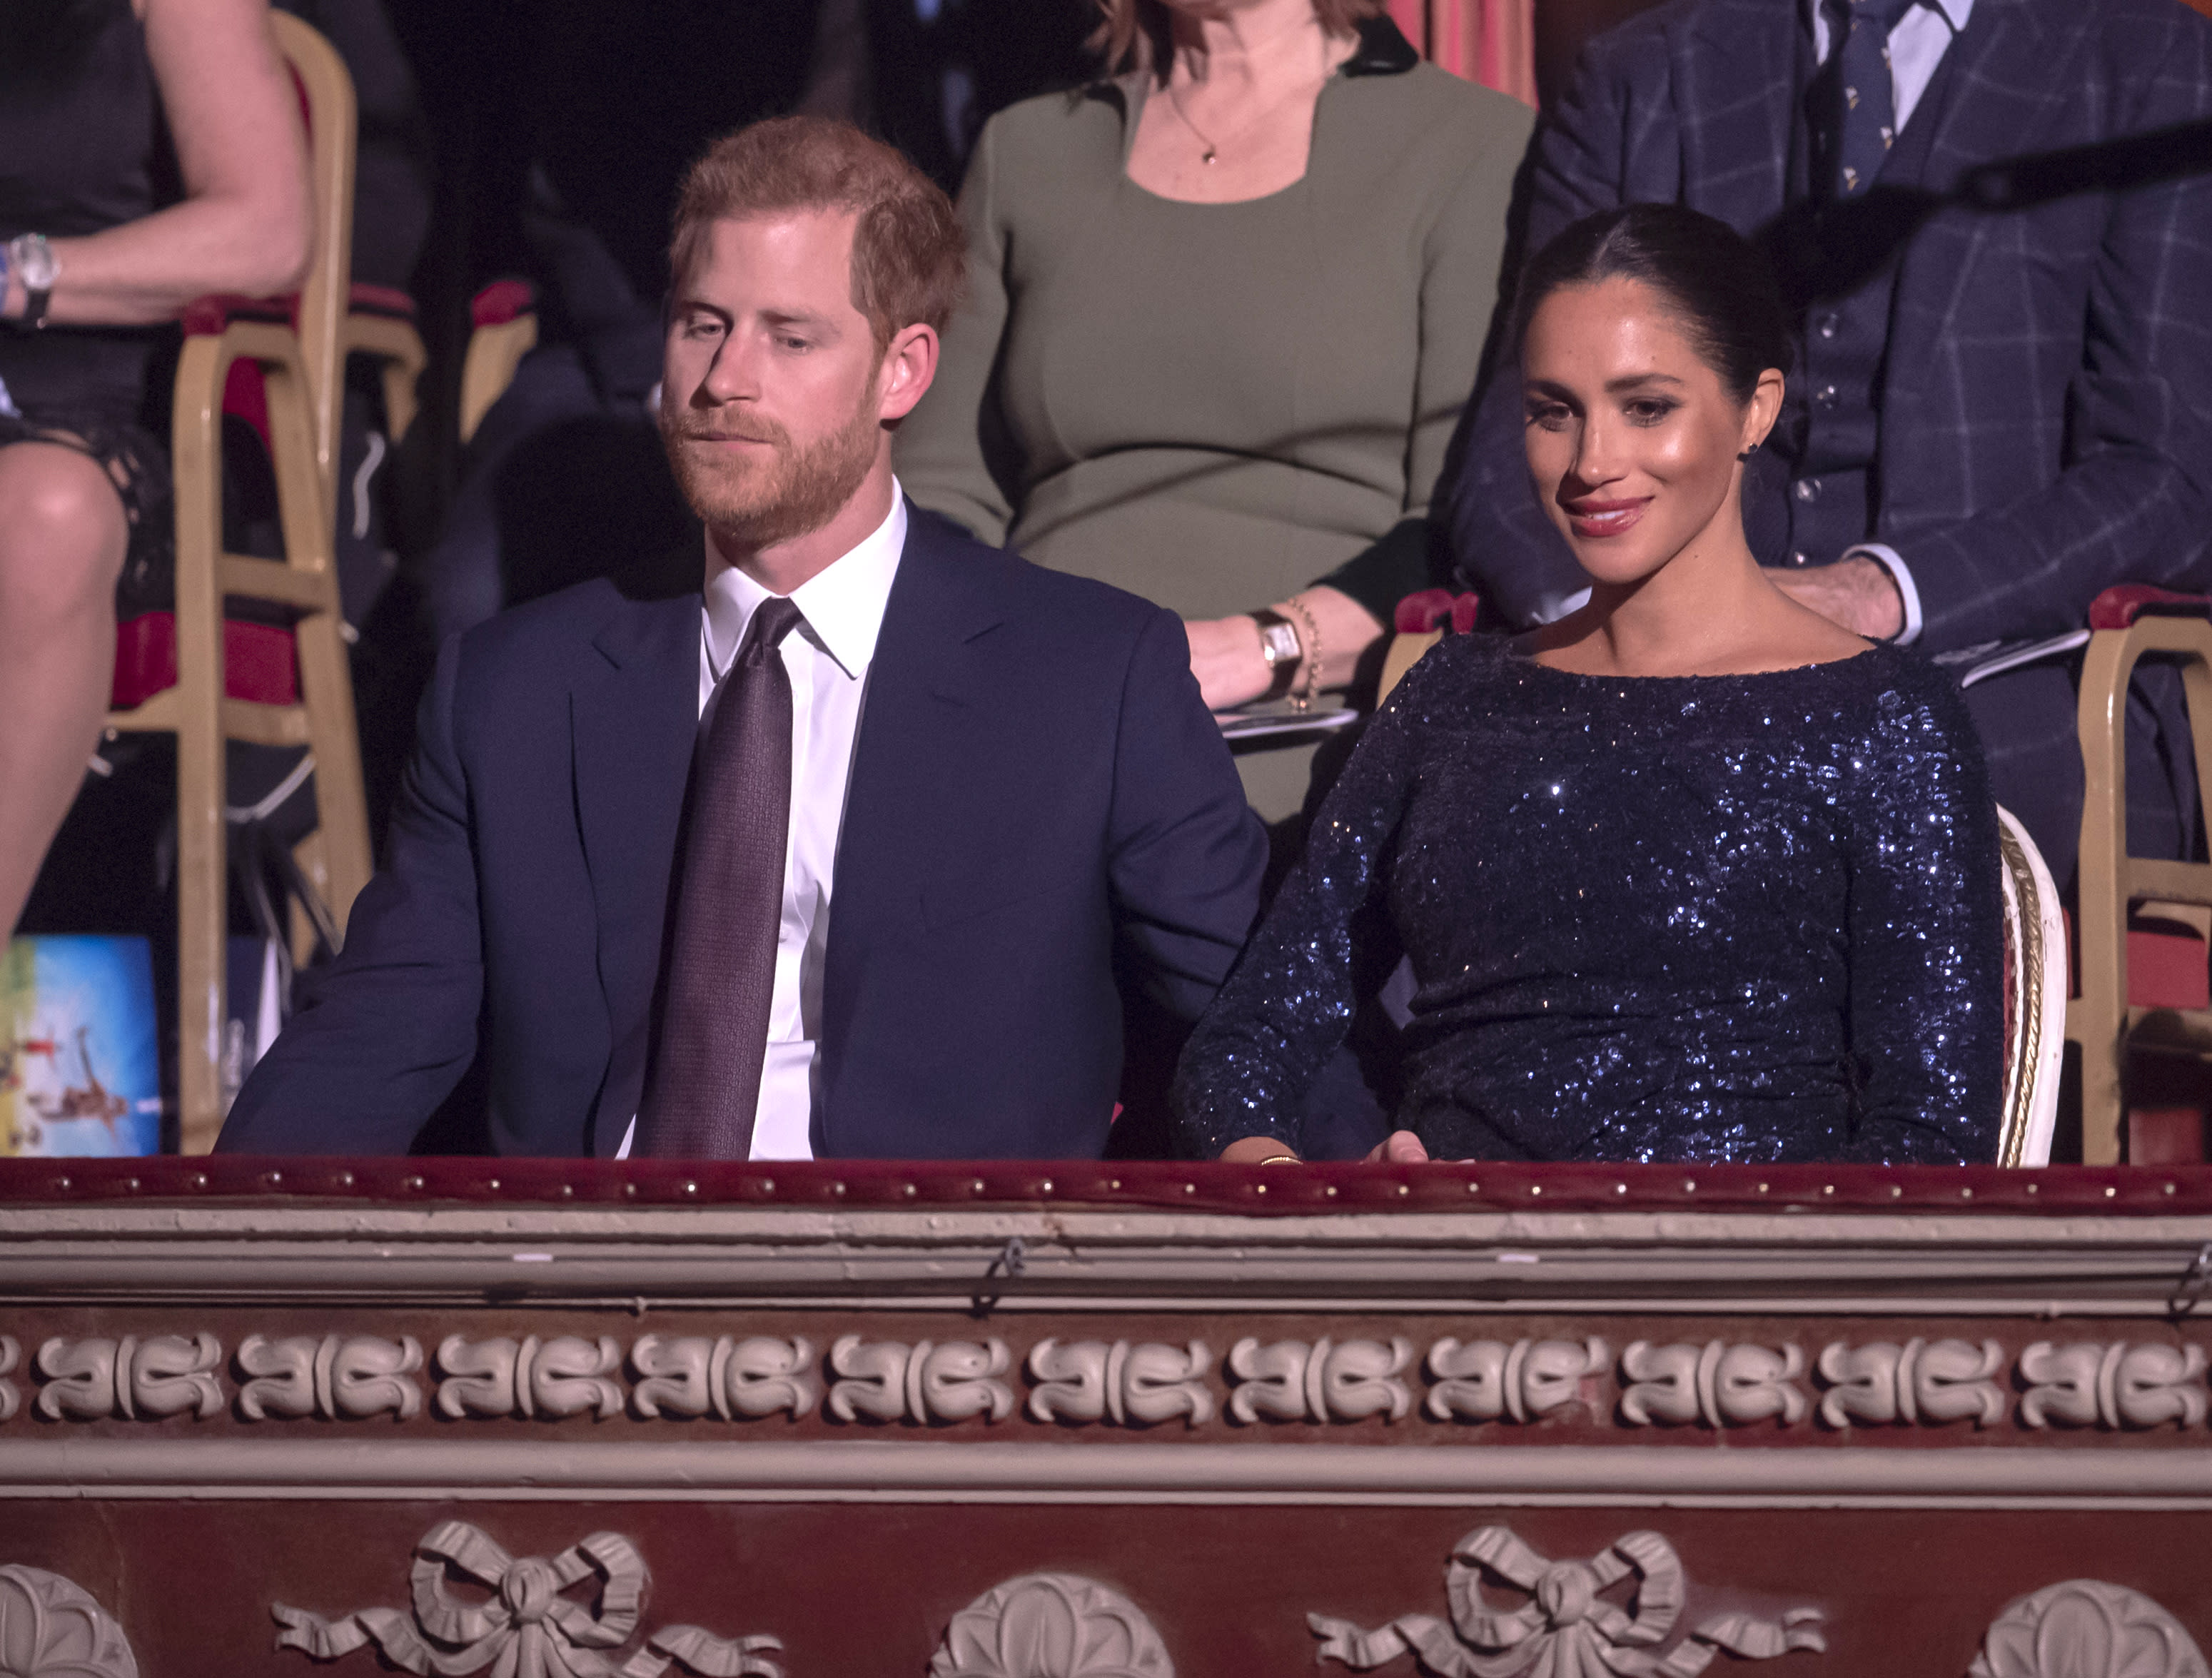 Harry caught rolling his eyes in awkward moment with Meghan